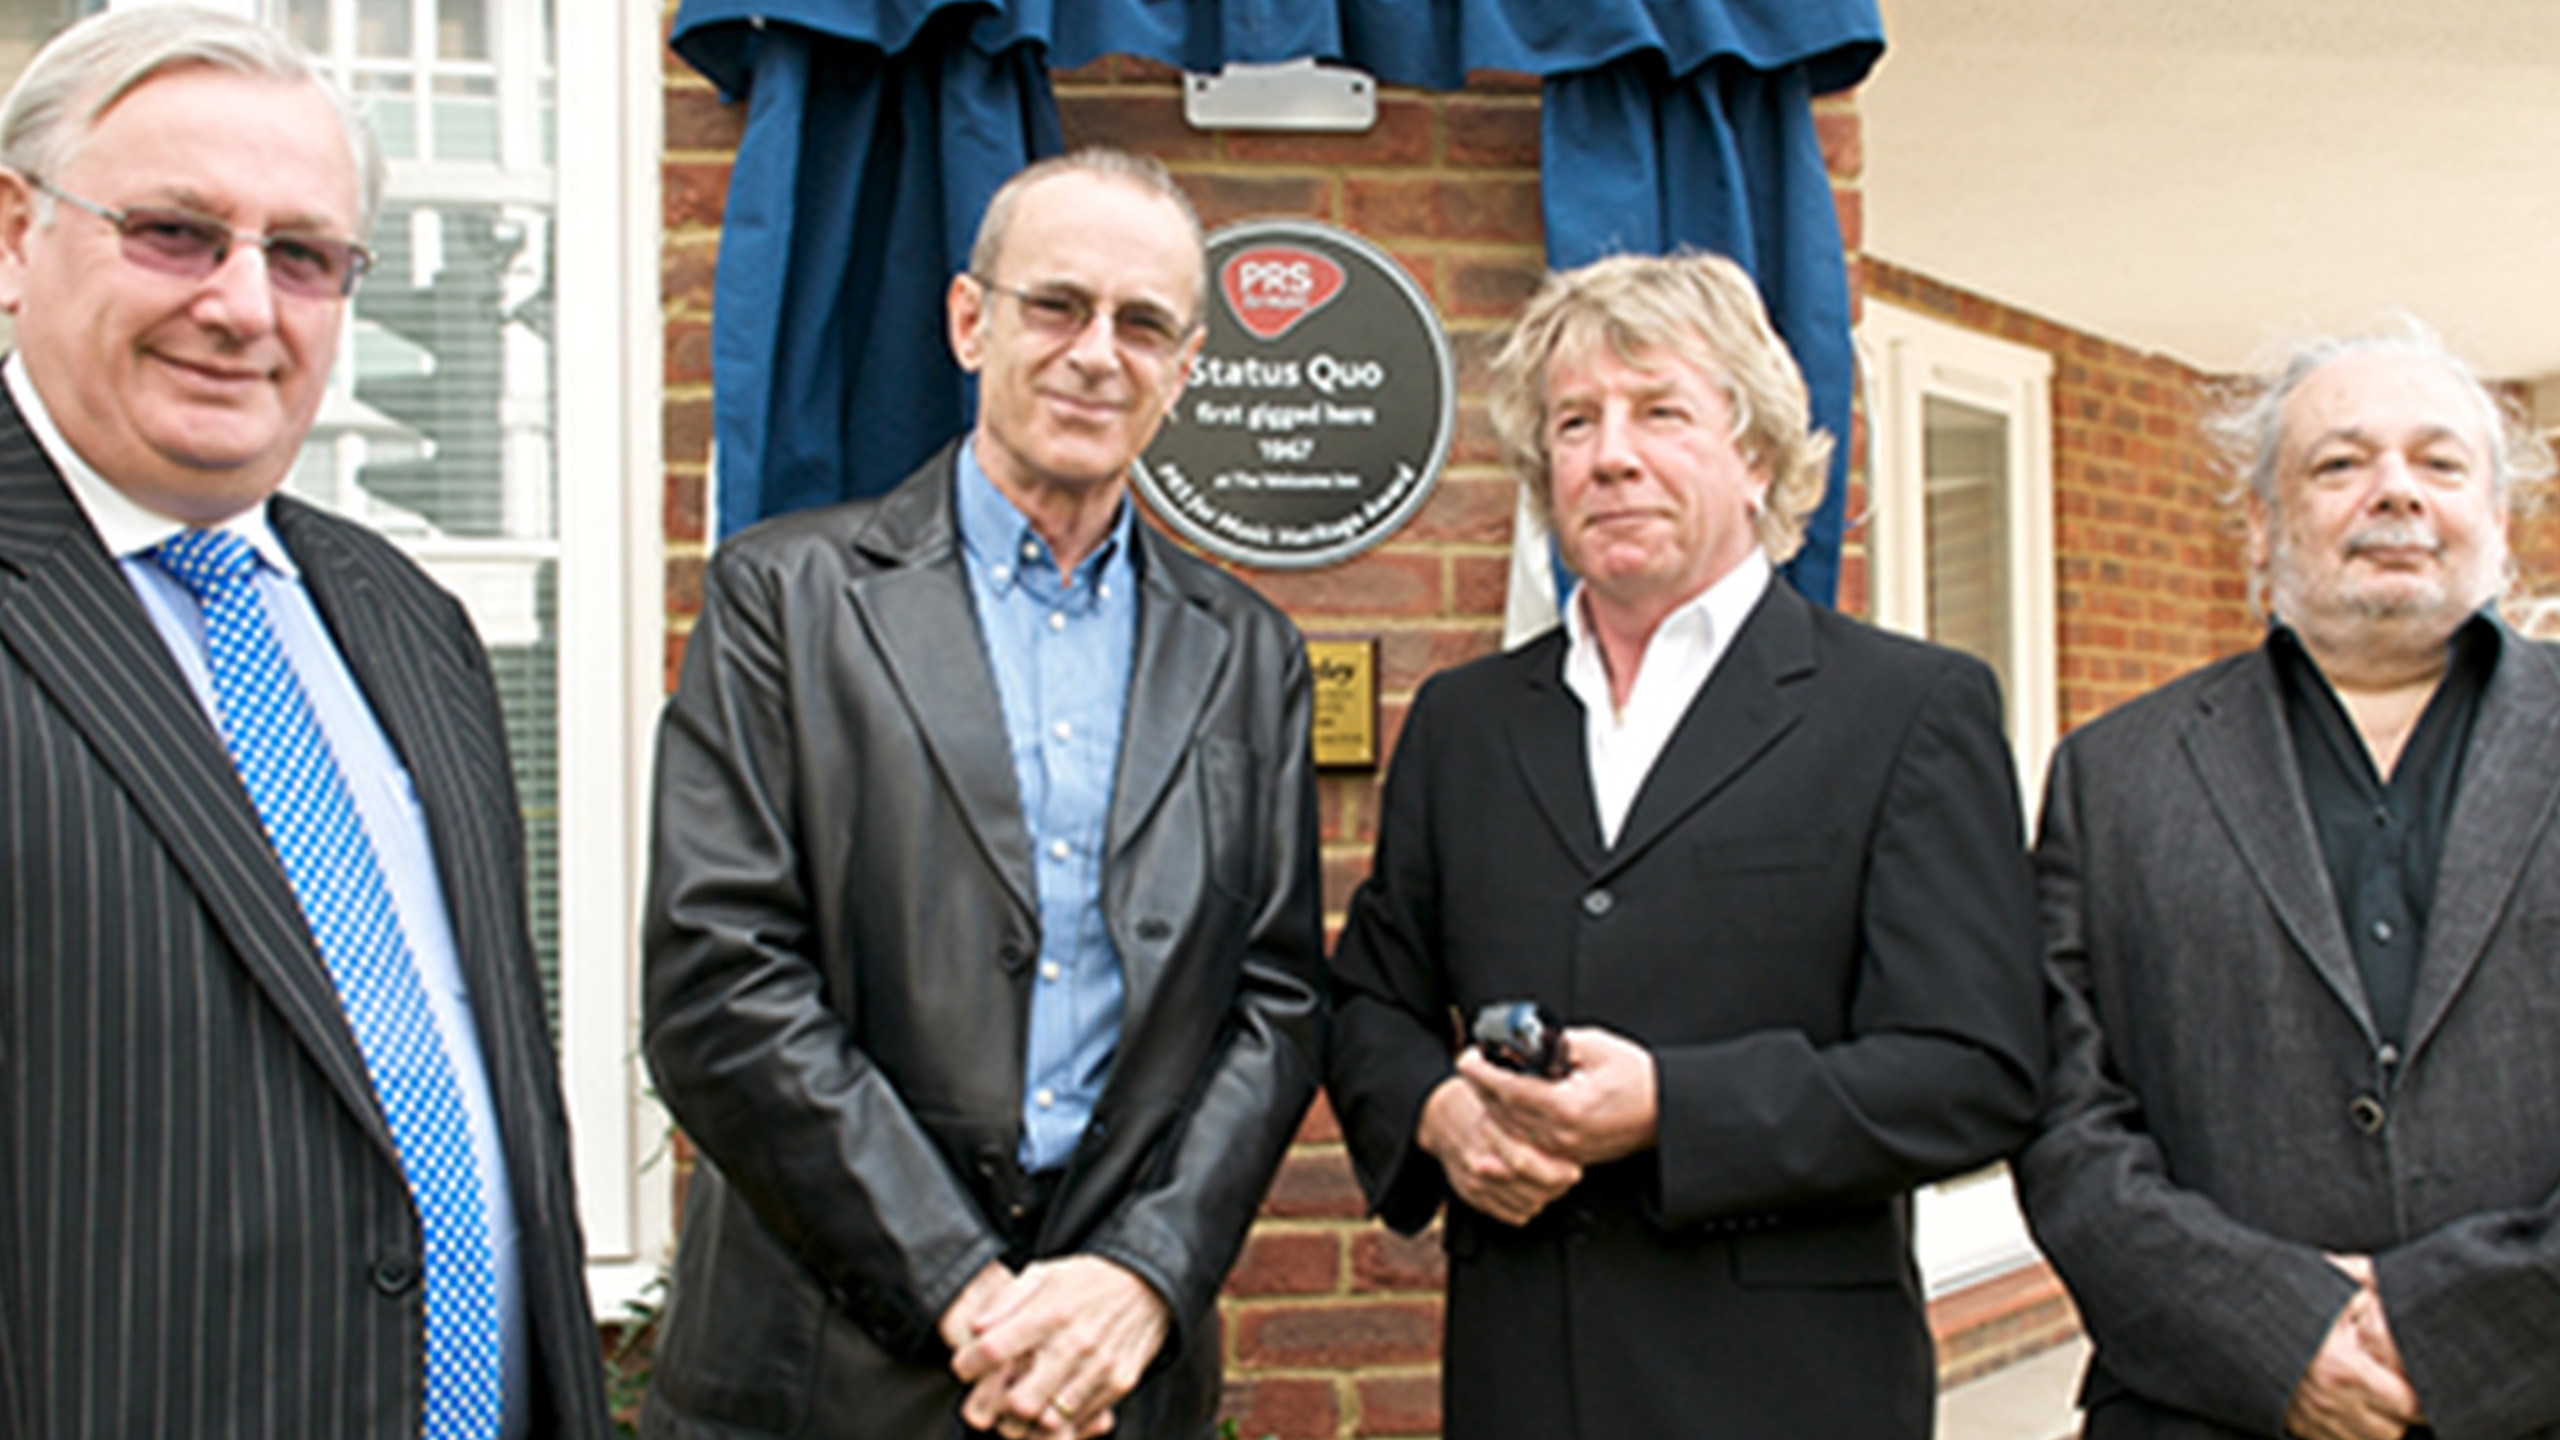 Status Quo at The Welcome Inn, Eltham, celebrating Heritage Award